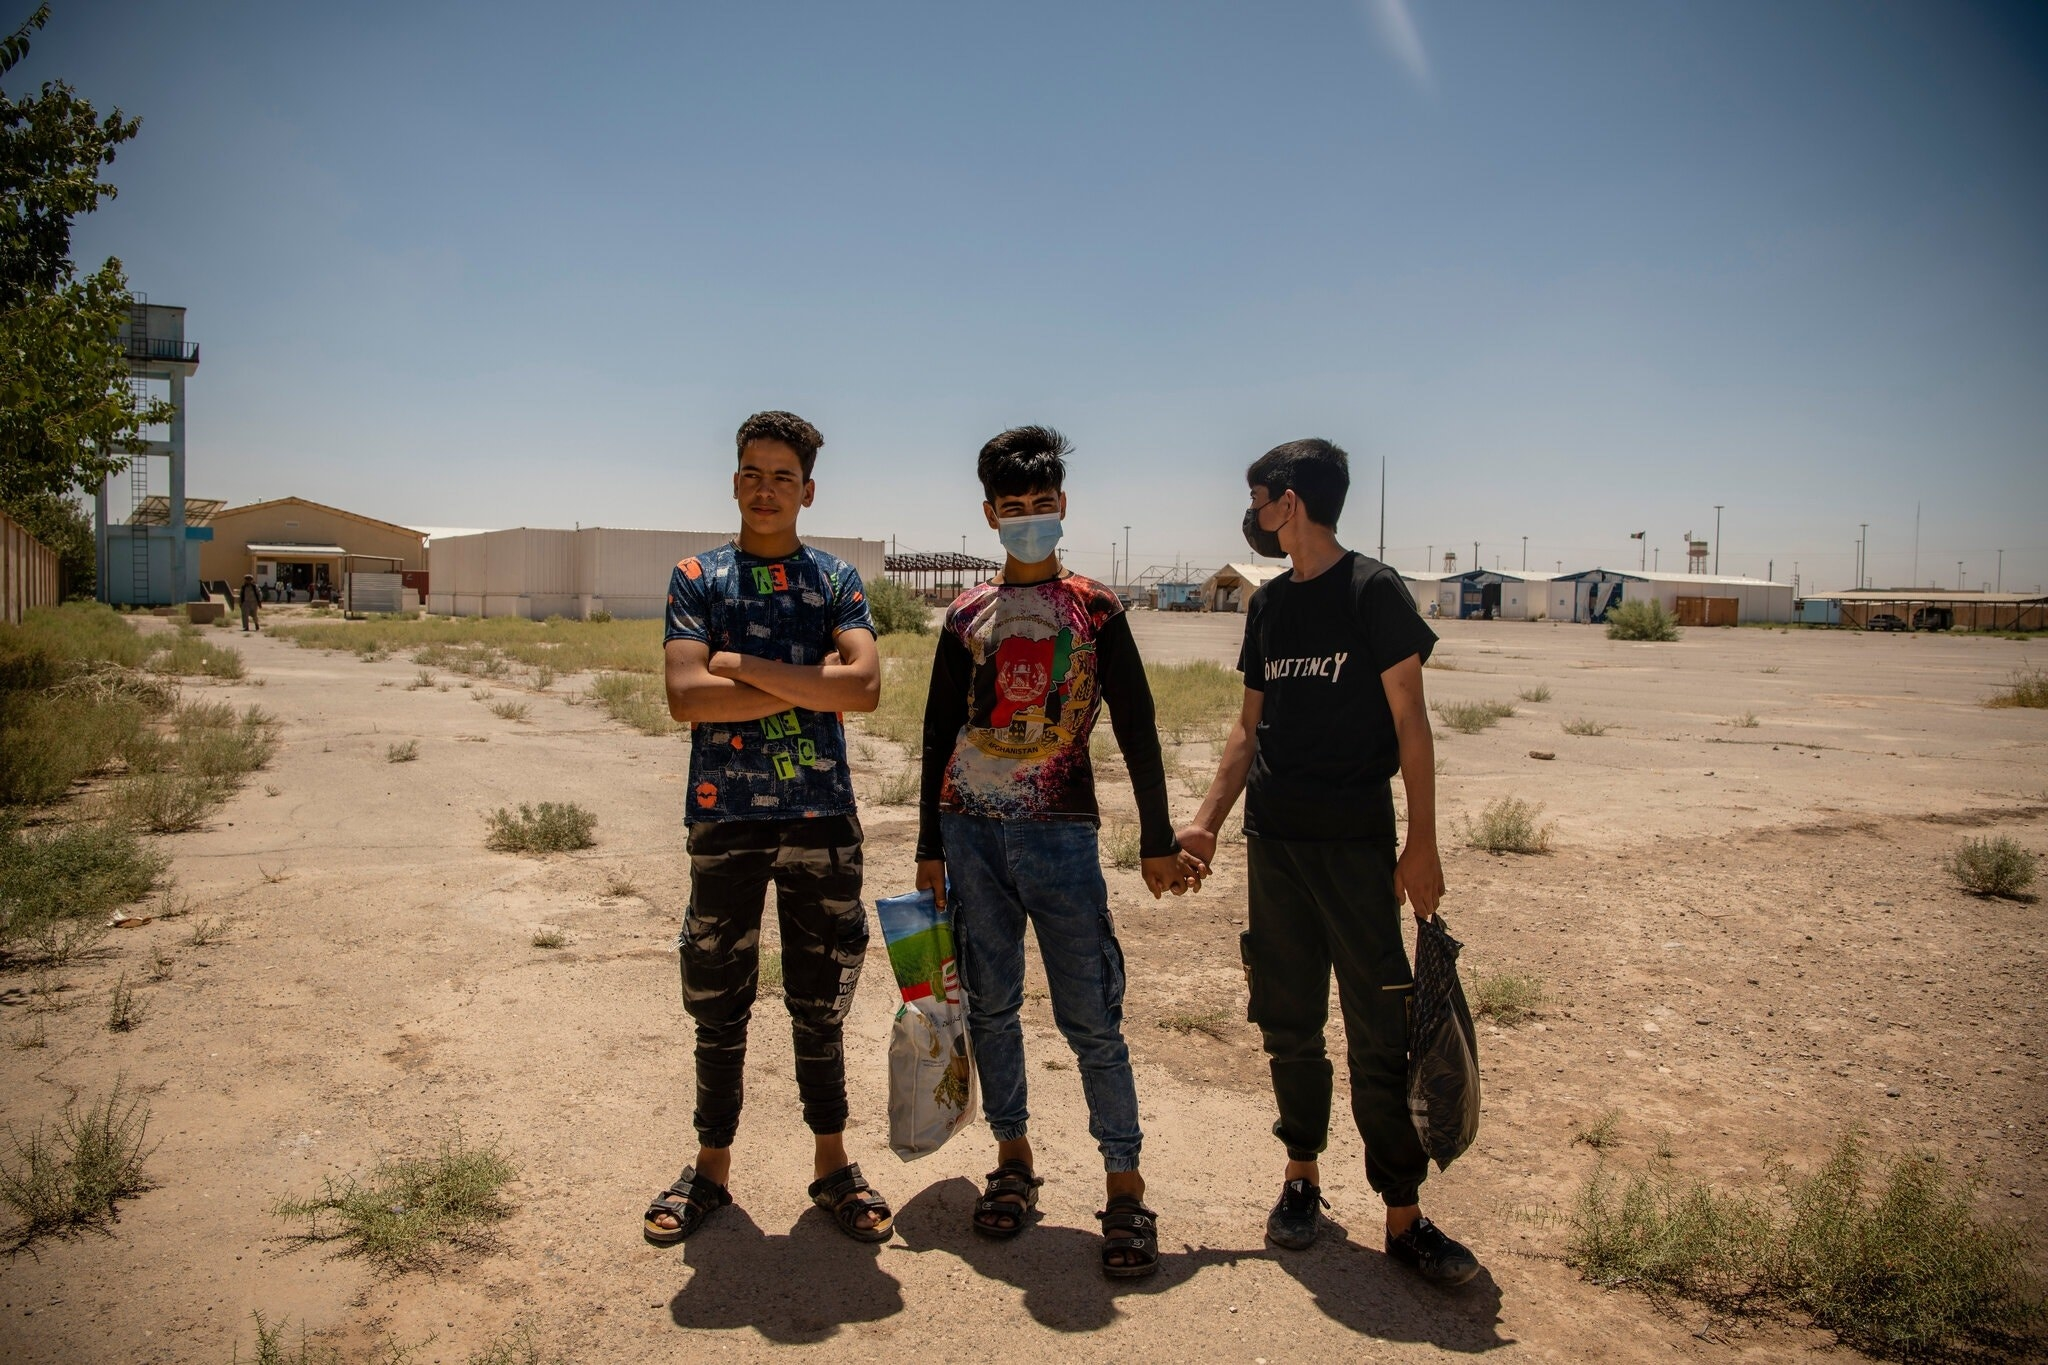 Three young afghan boys stand in front of a desert and a few low buildings, carrying shopping bags